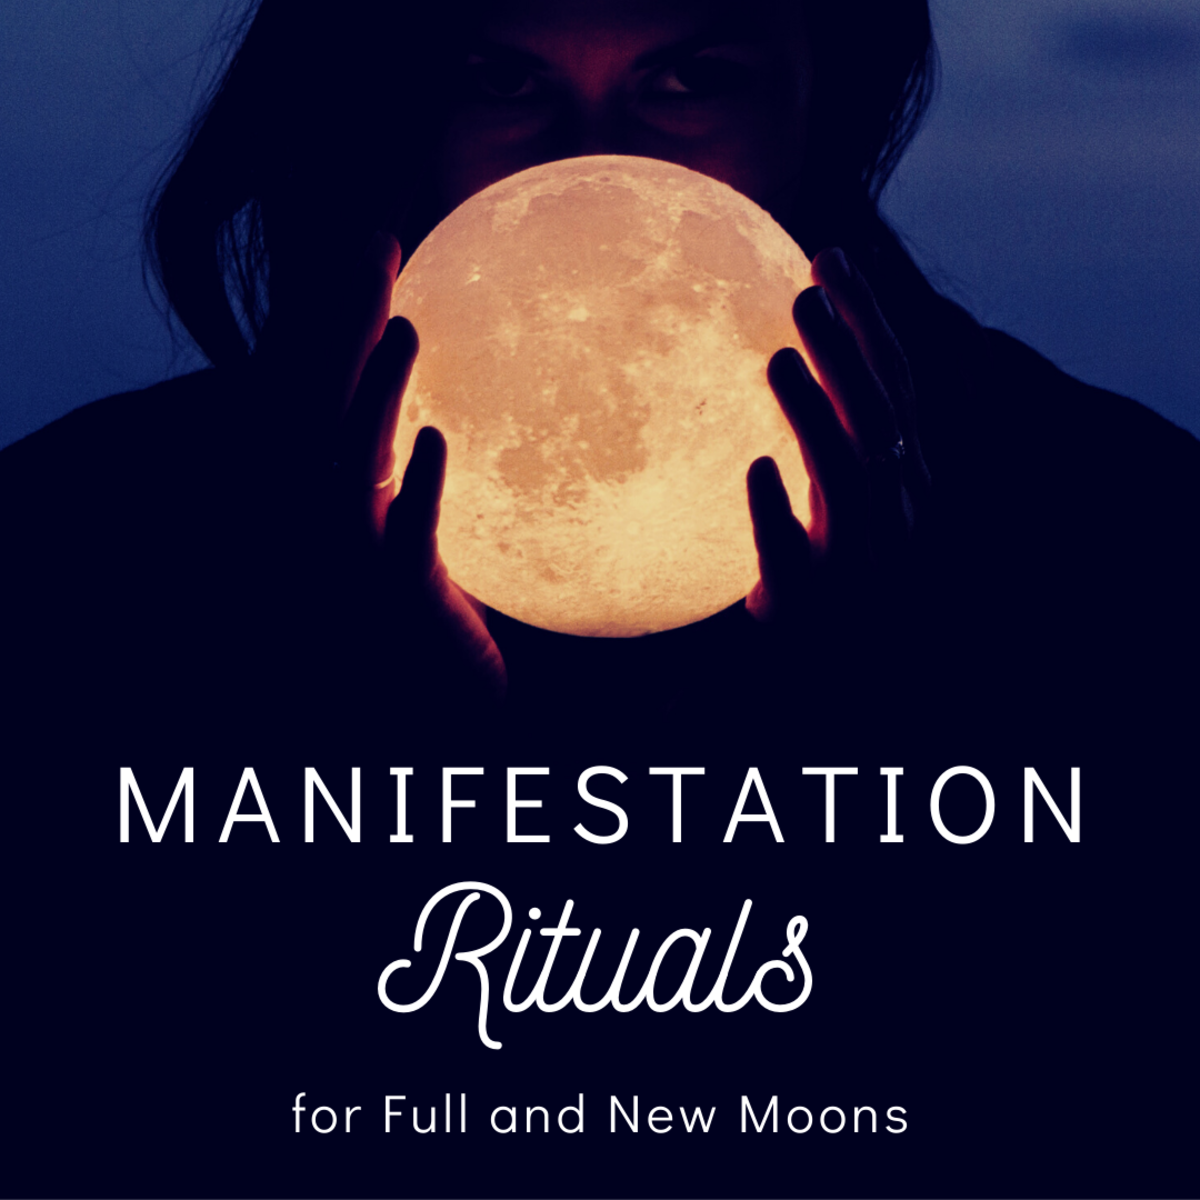 How to Manifest With New Moon and Full Moon Rituals